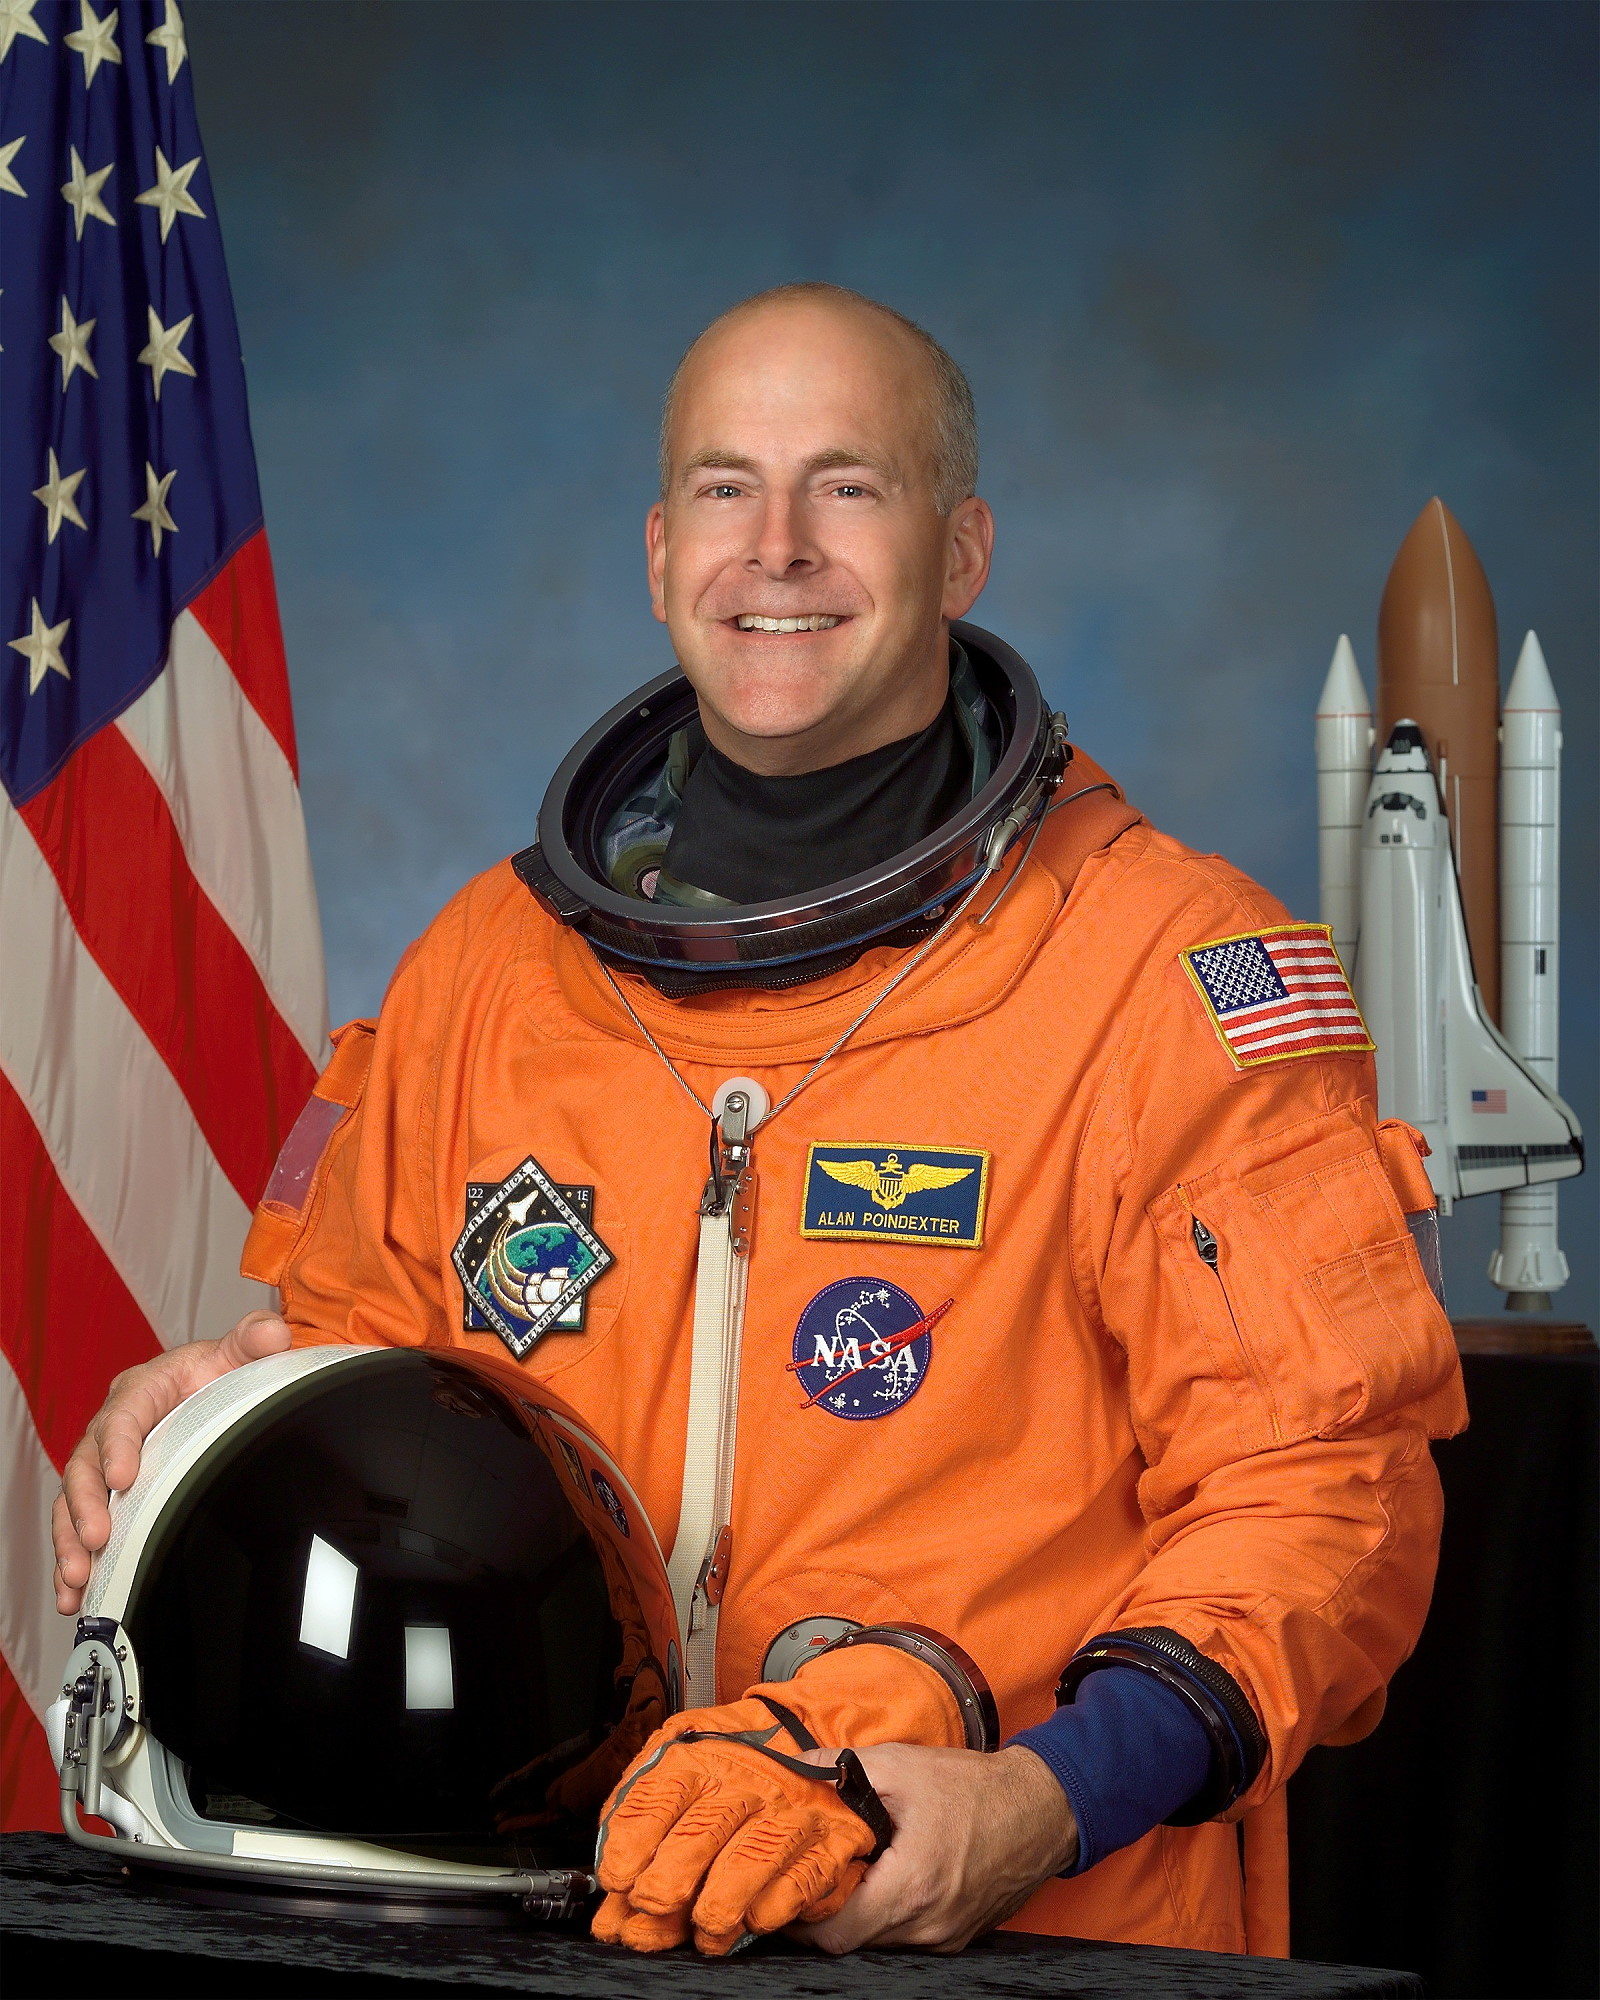 Astronaut Biography: Alan Poindexter